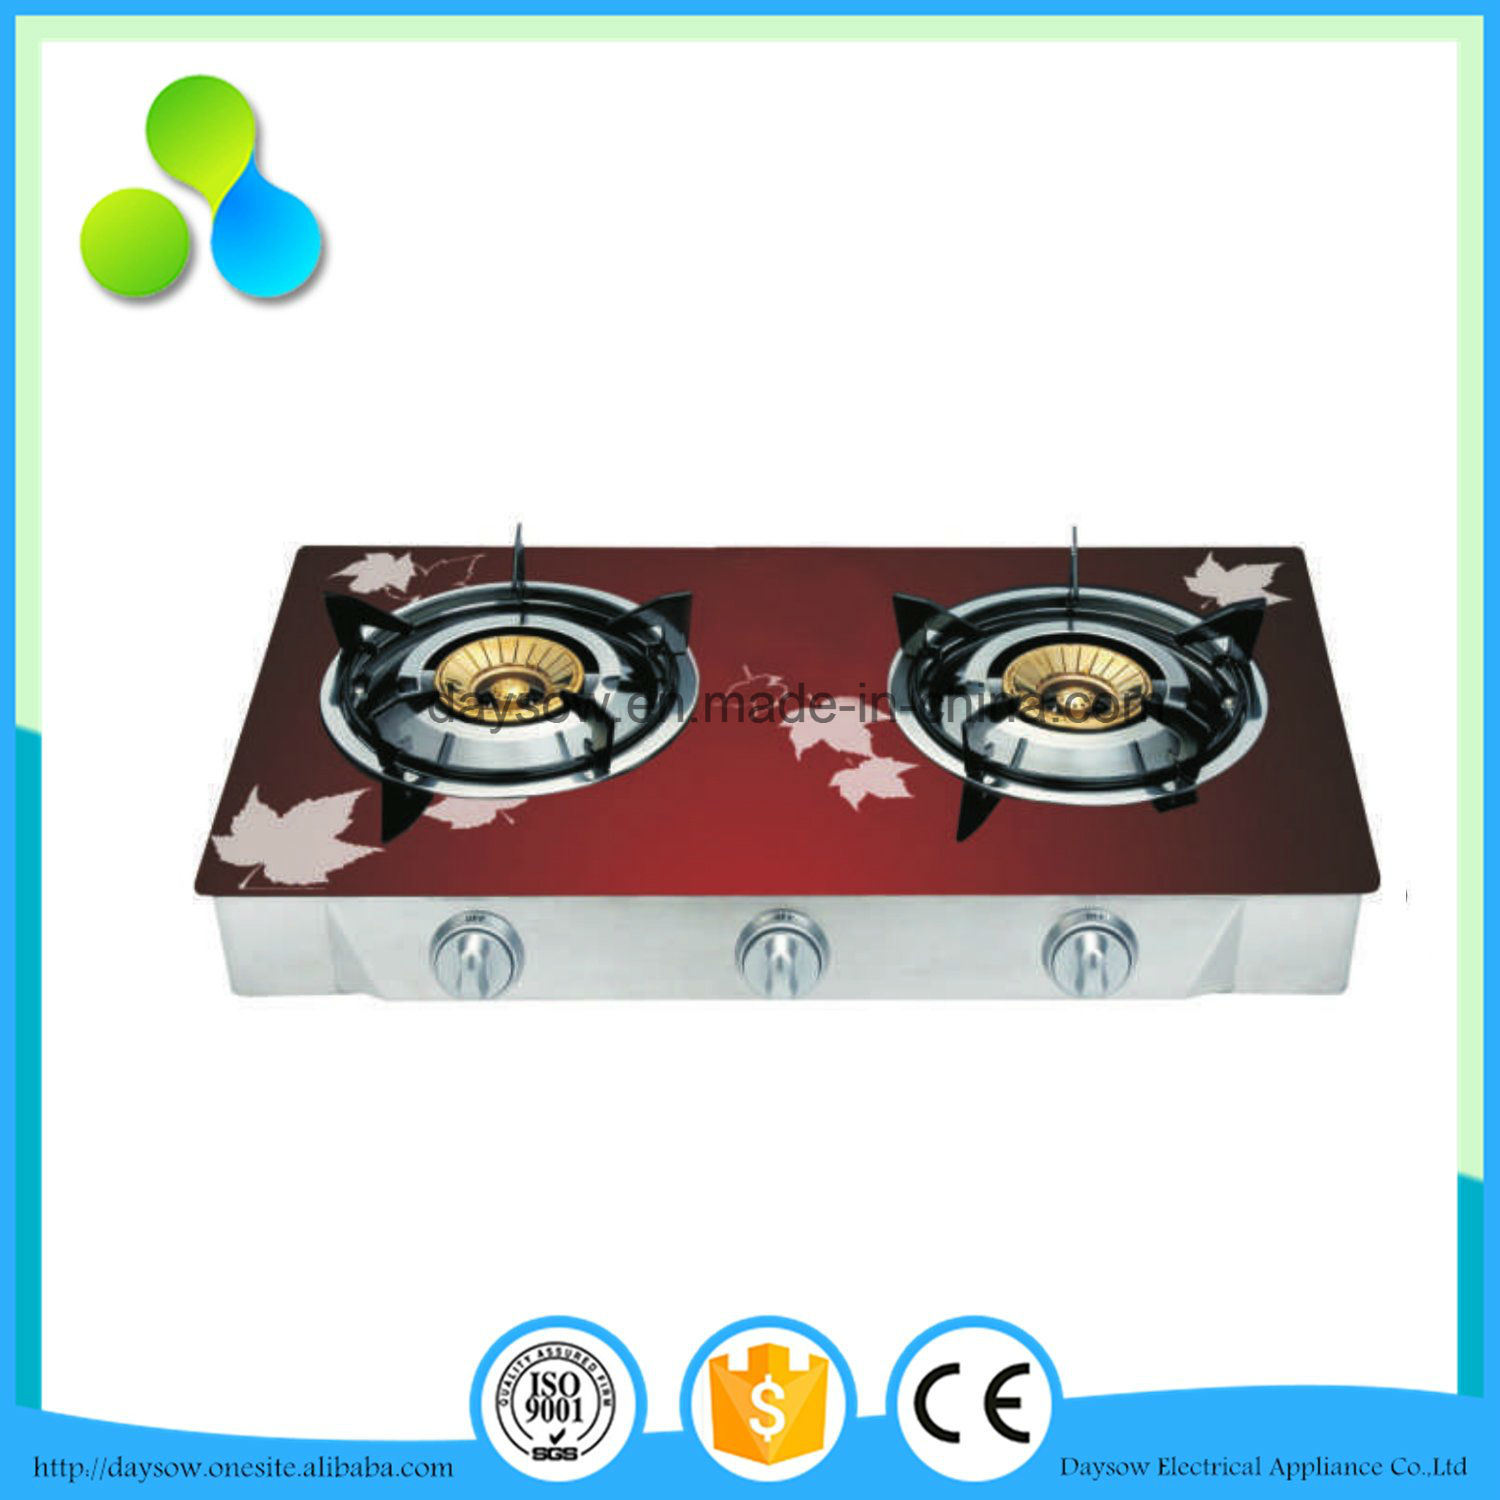 Manufacturers in China Top Gas Stove Brands in India